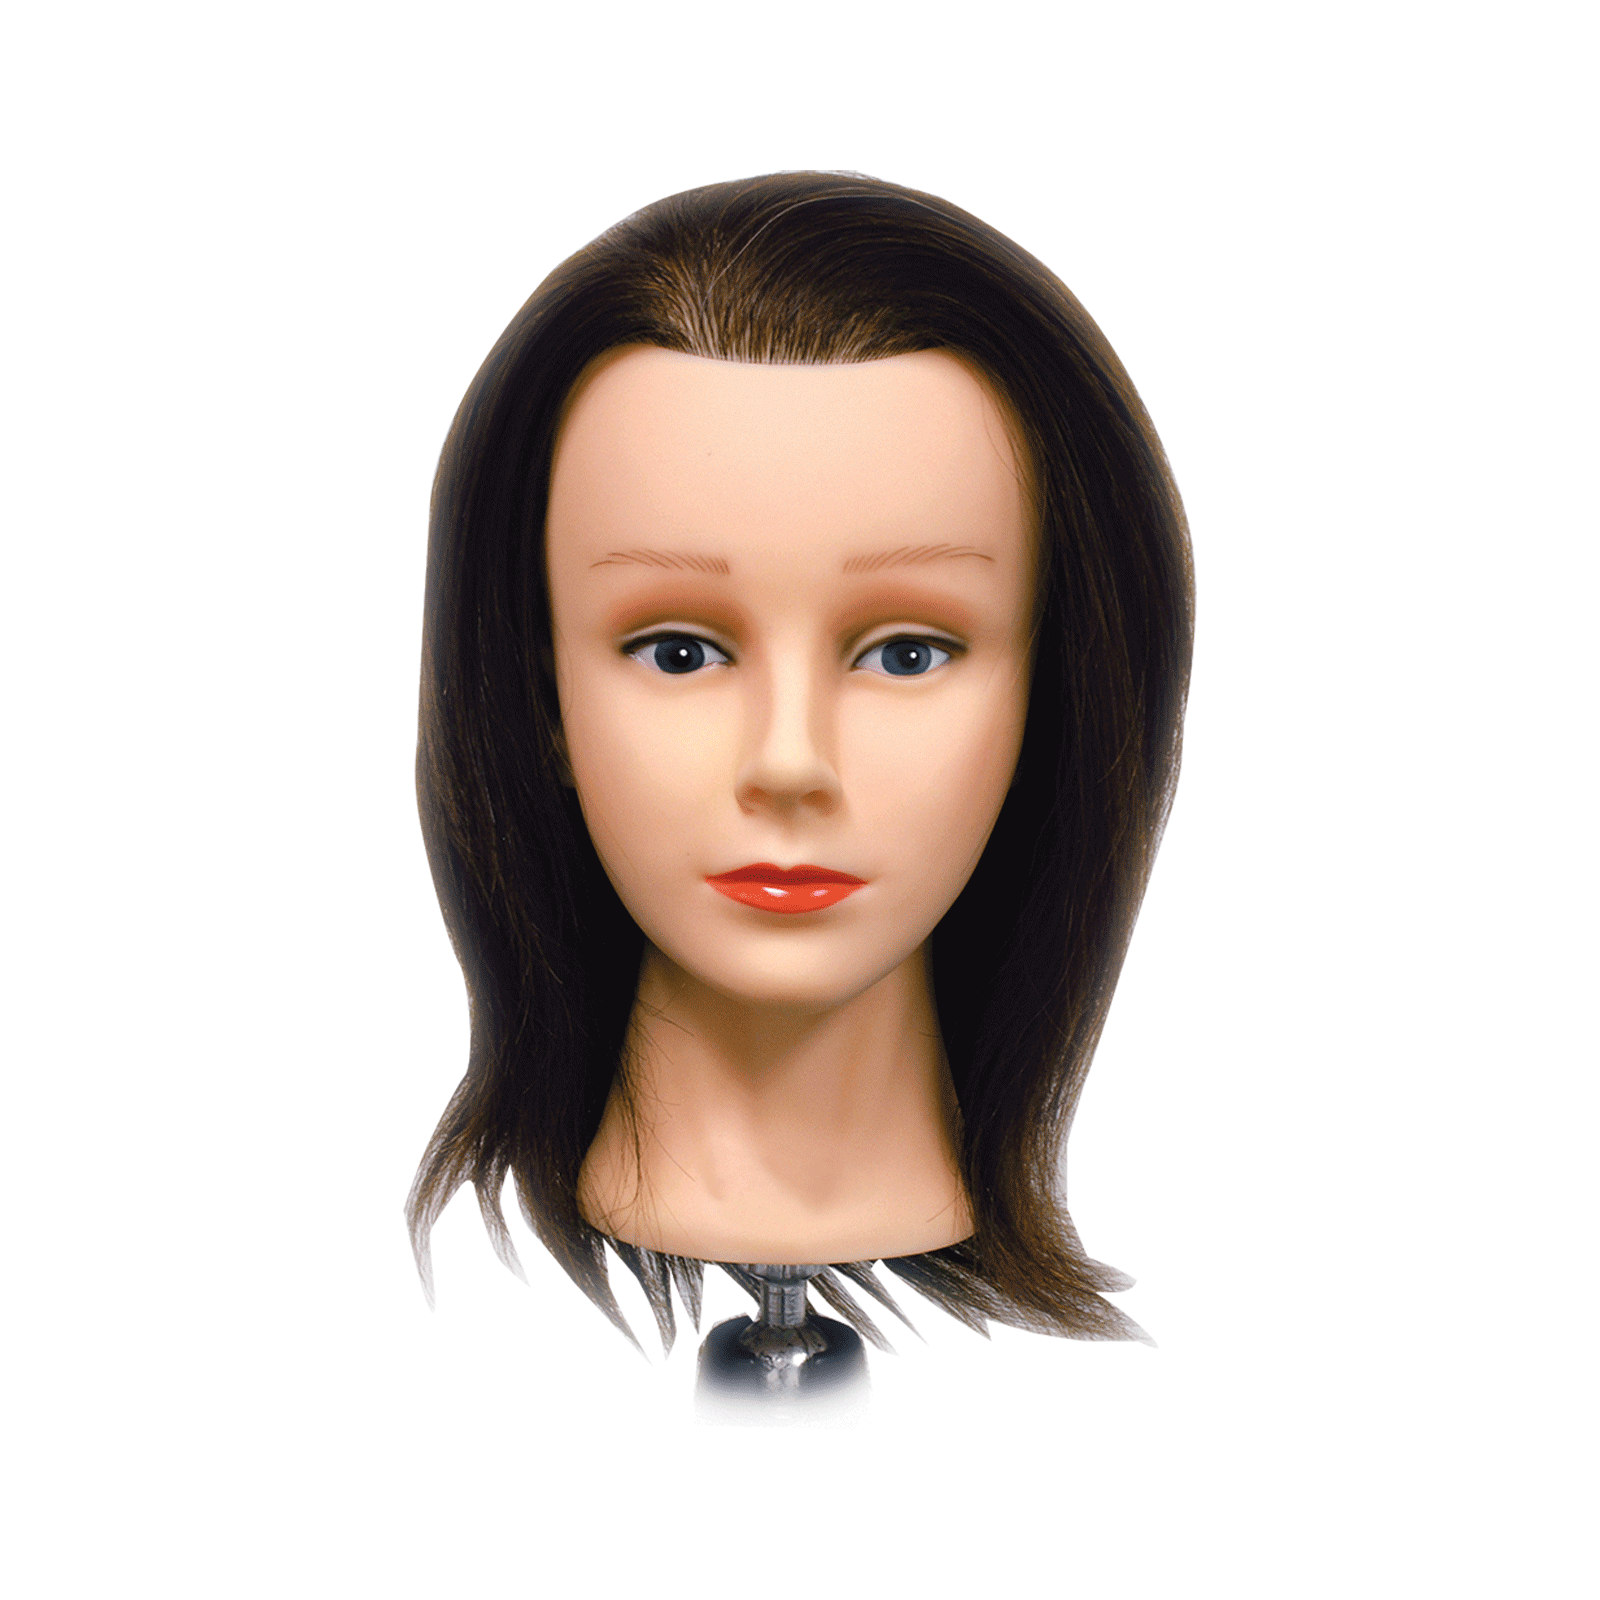 Celebrity Bridgette Budget Mannequin Head